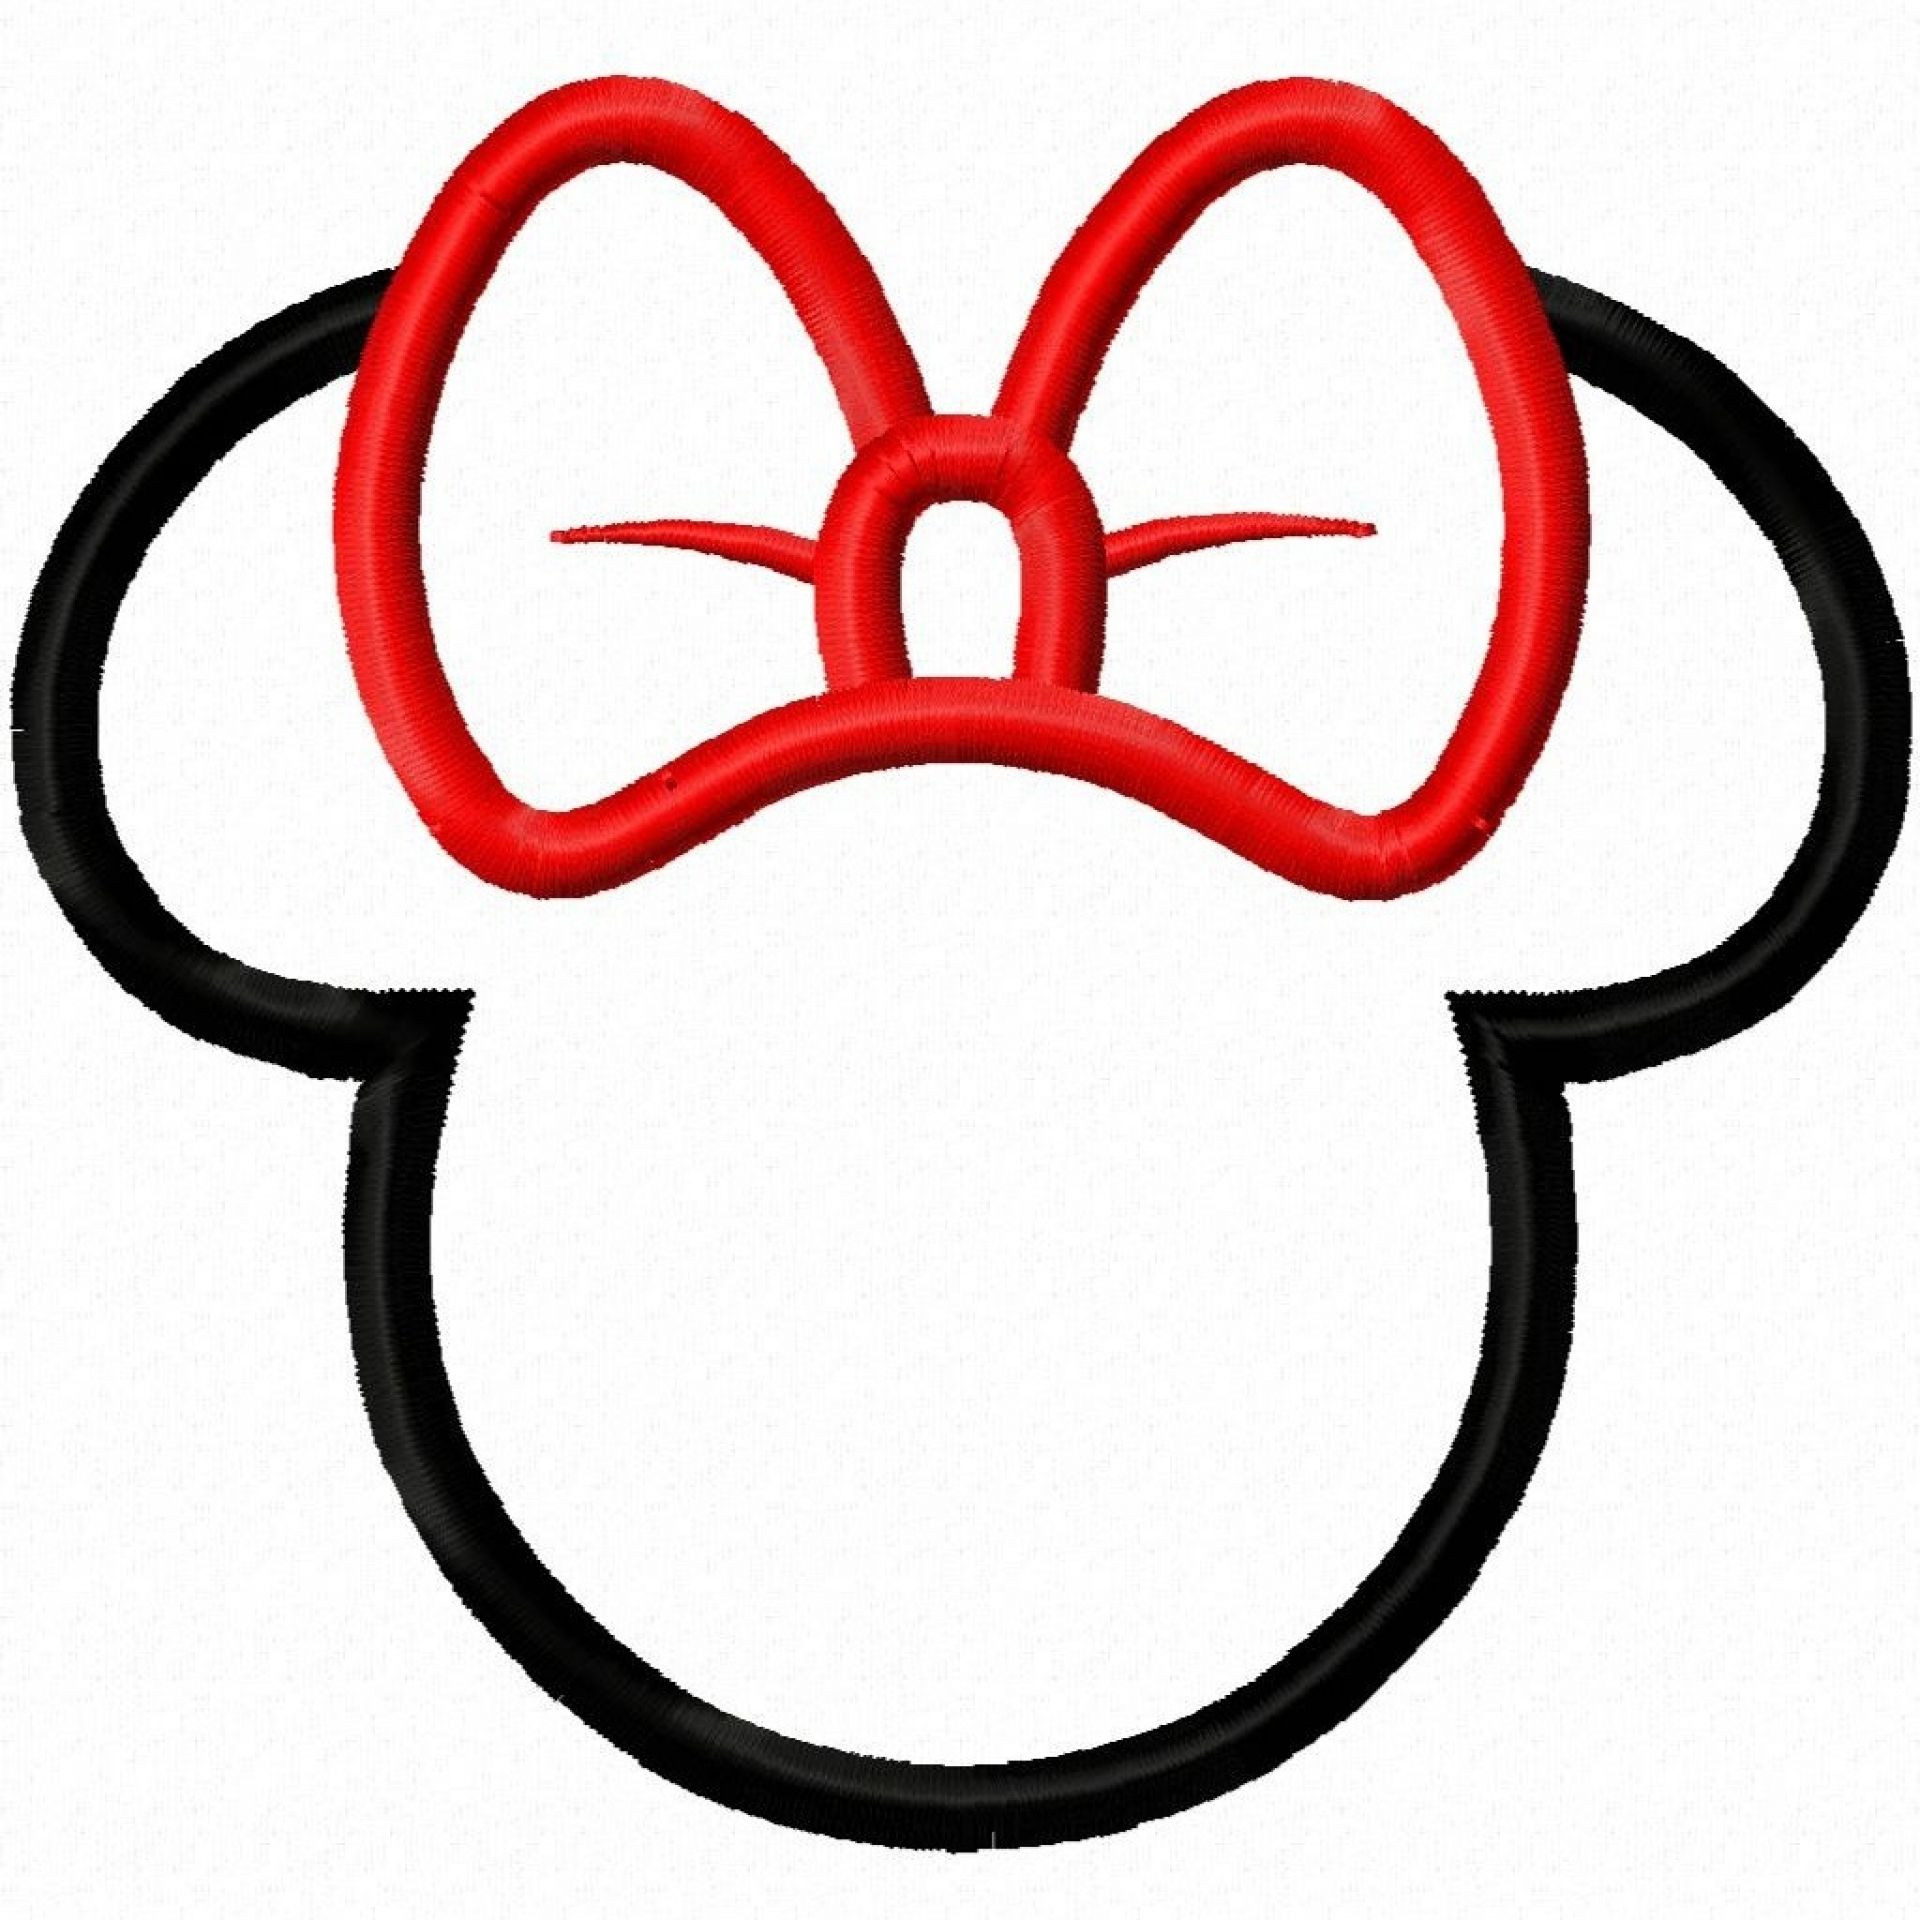 1920x1920 Minnie Silhouette Clip Art At Getdrawings Com Free For Personal